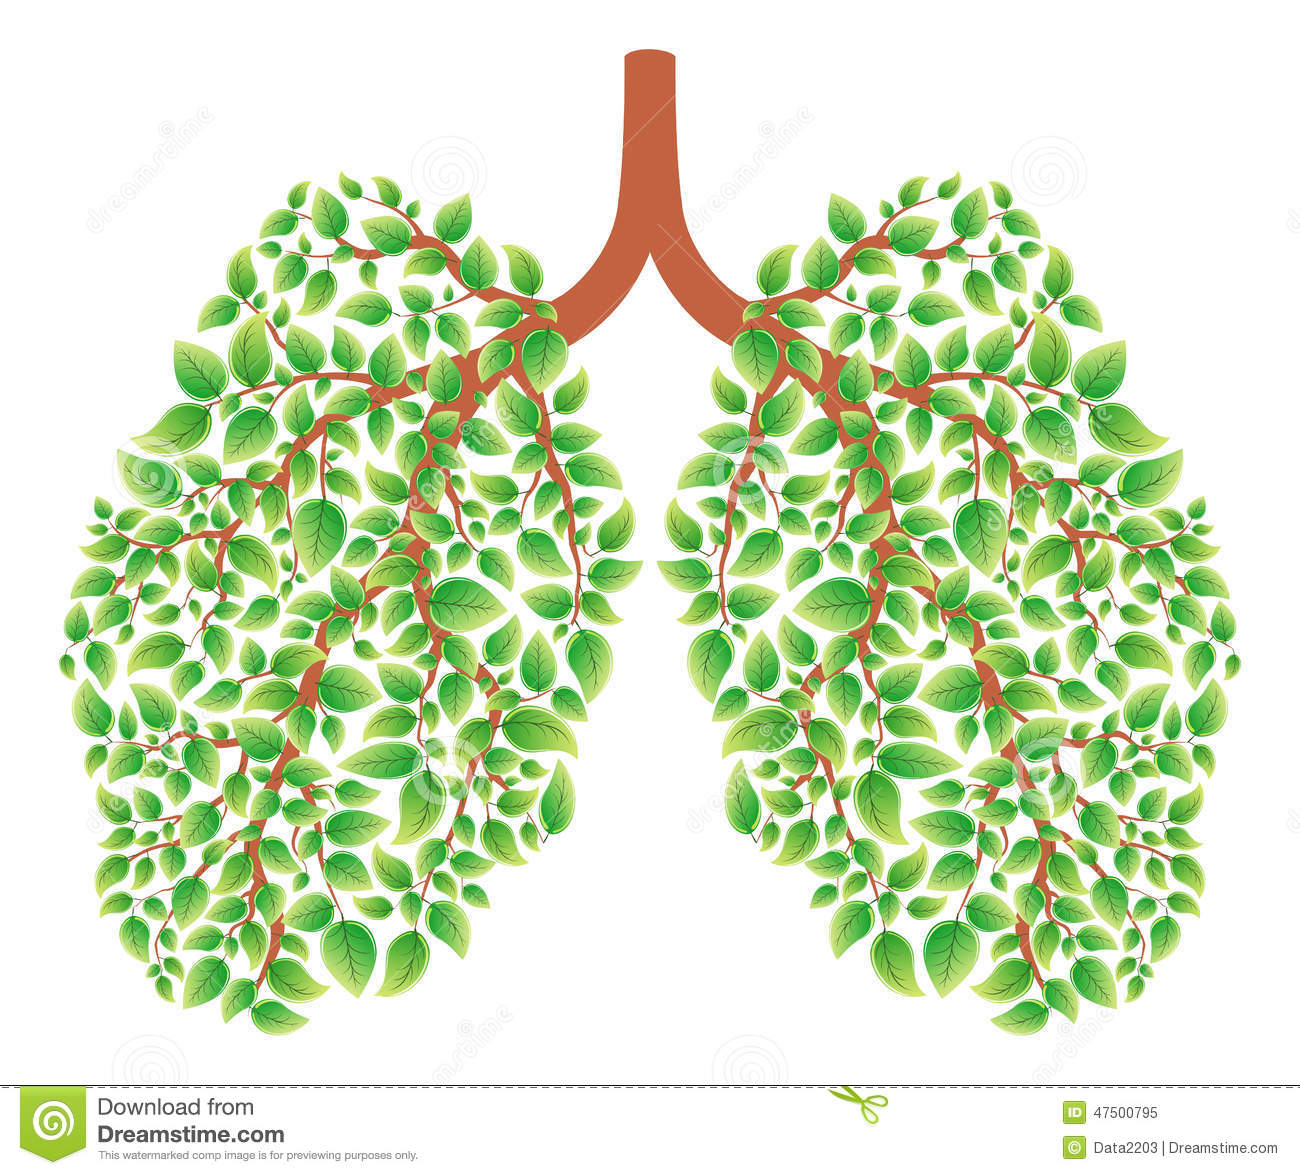 Vector illustration of healthy lungs consisting of green leaves.